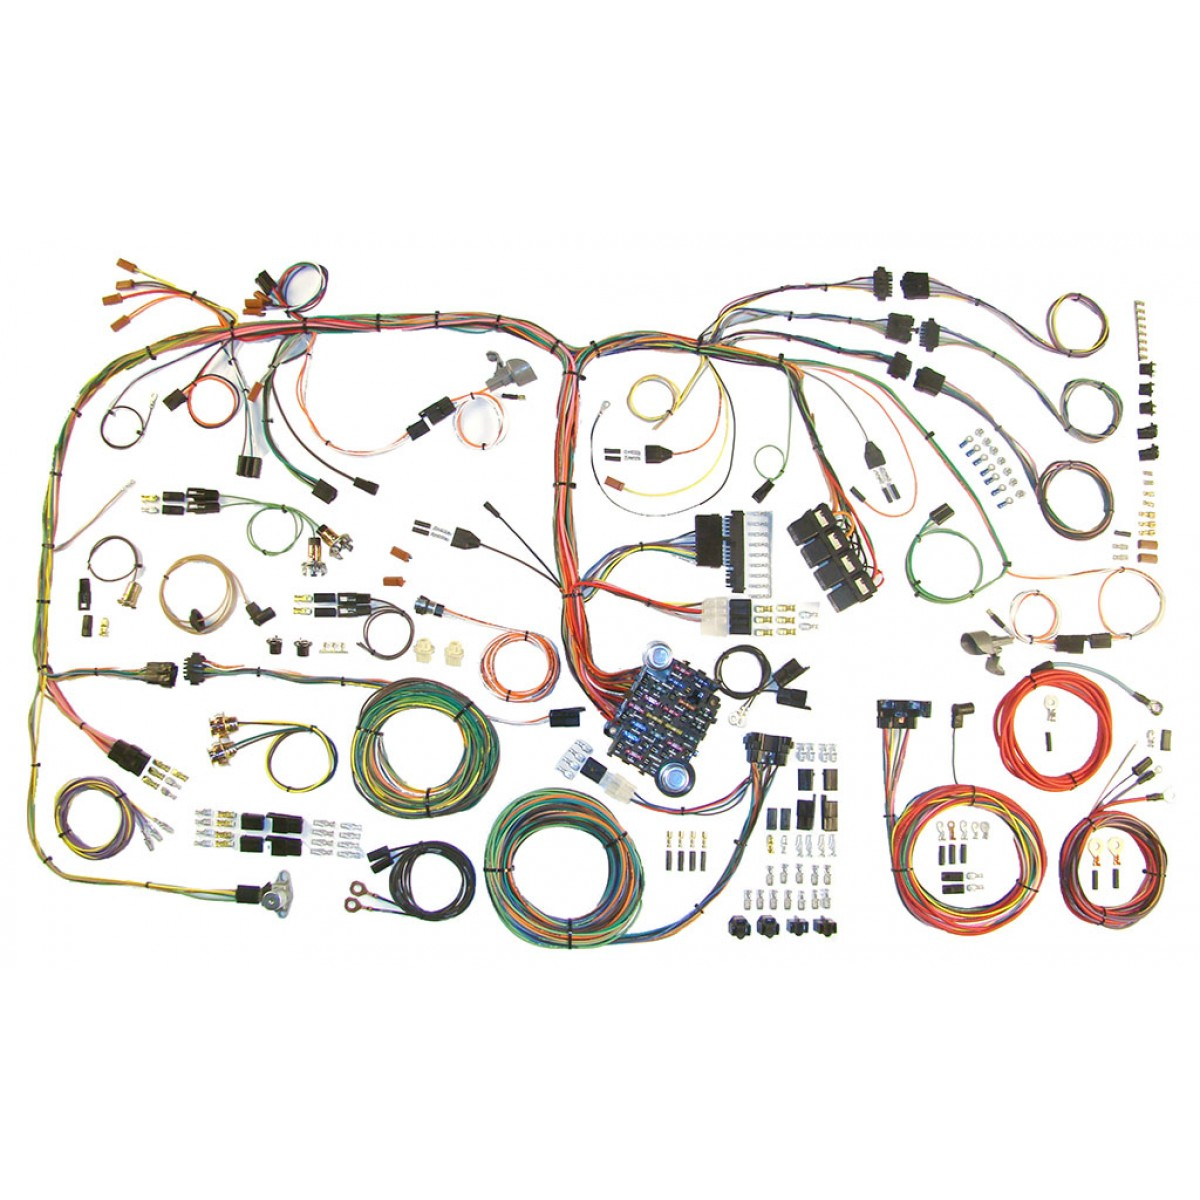 510289 complete wiring harness kit 1970 1974 cuda challenger part 510289 cuda wiring harness wiring harness kit 1970 1974 cuda & challenger part 510289 american